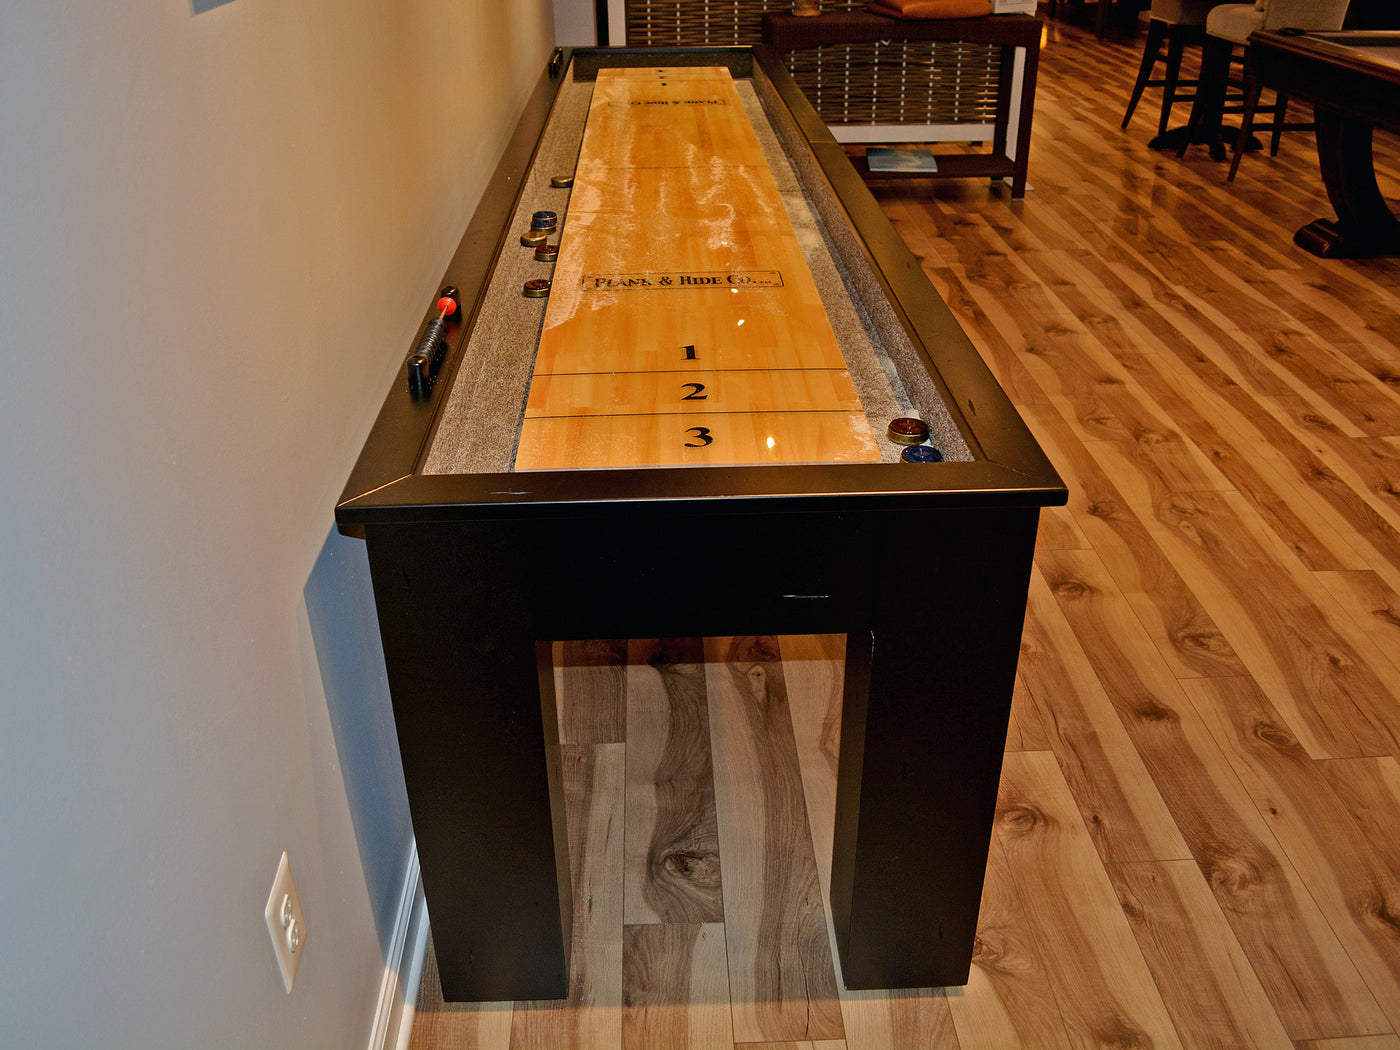 Charming ... Plank And Hide Shuffleboard Play Surface Detail ...